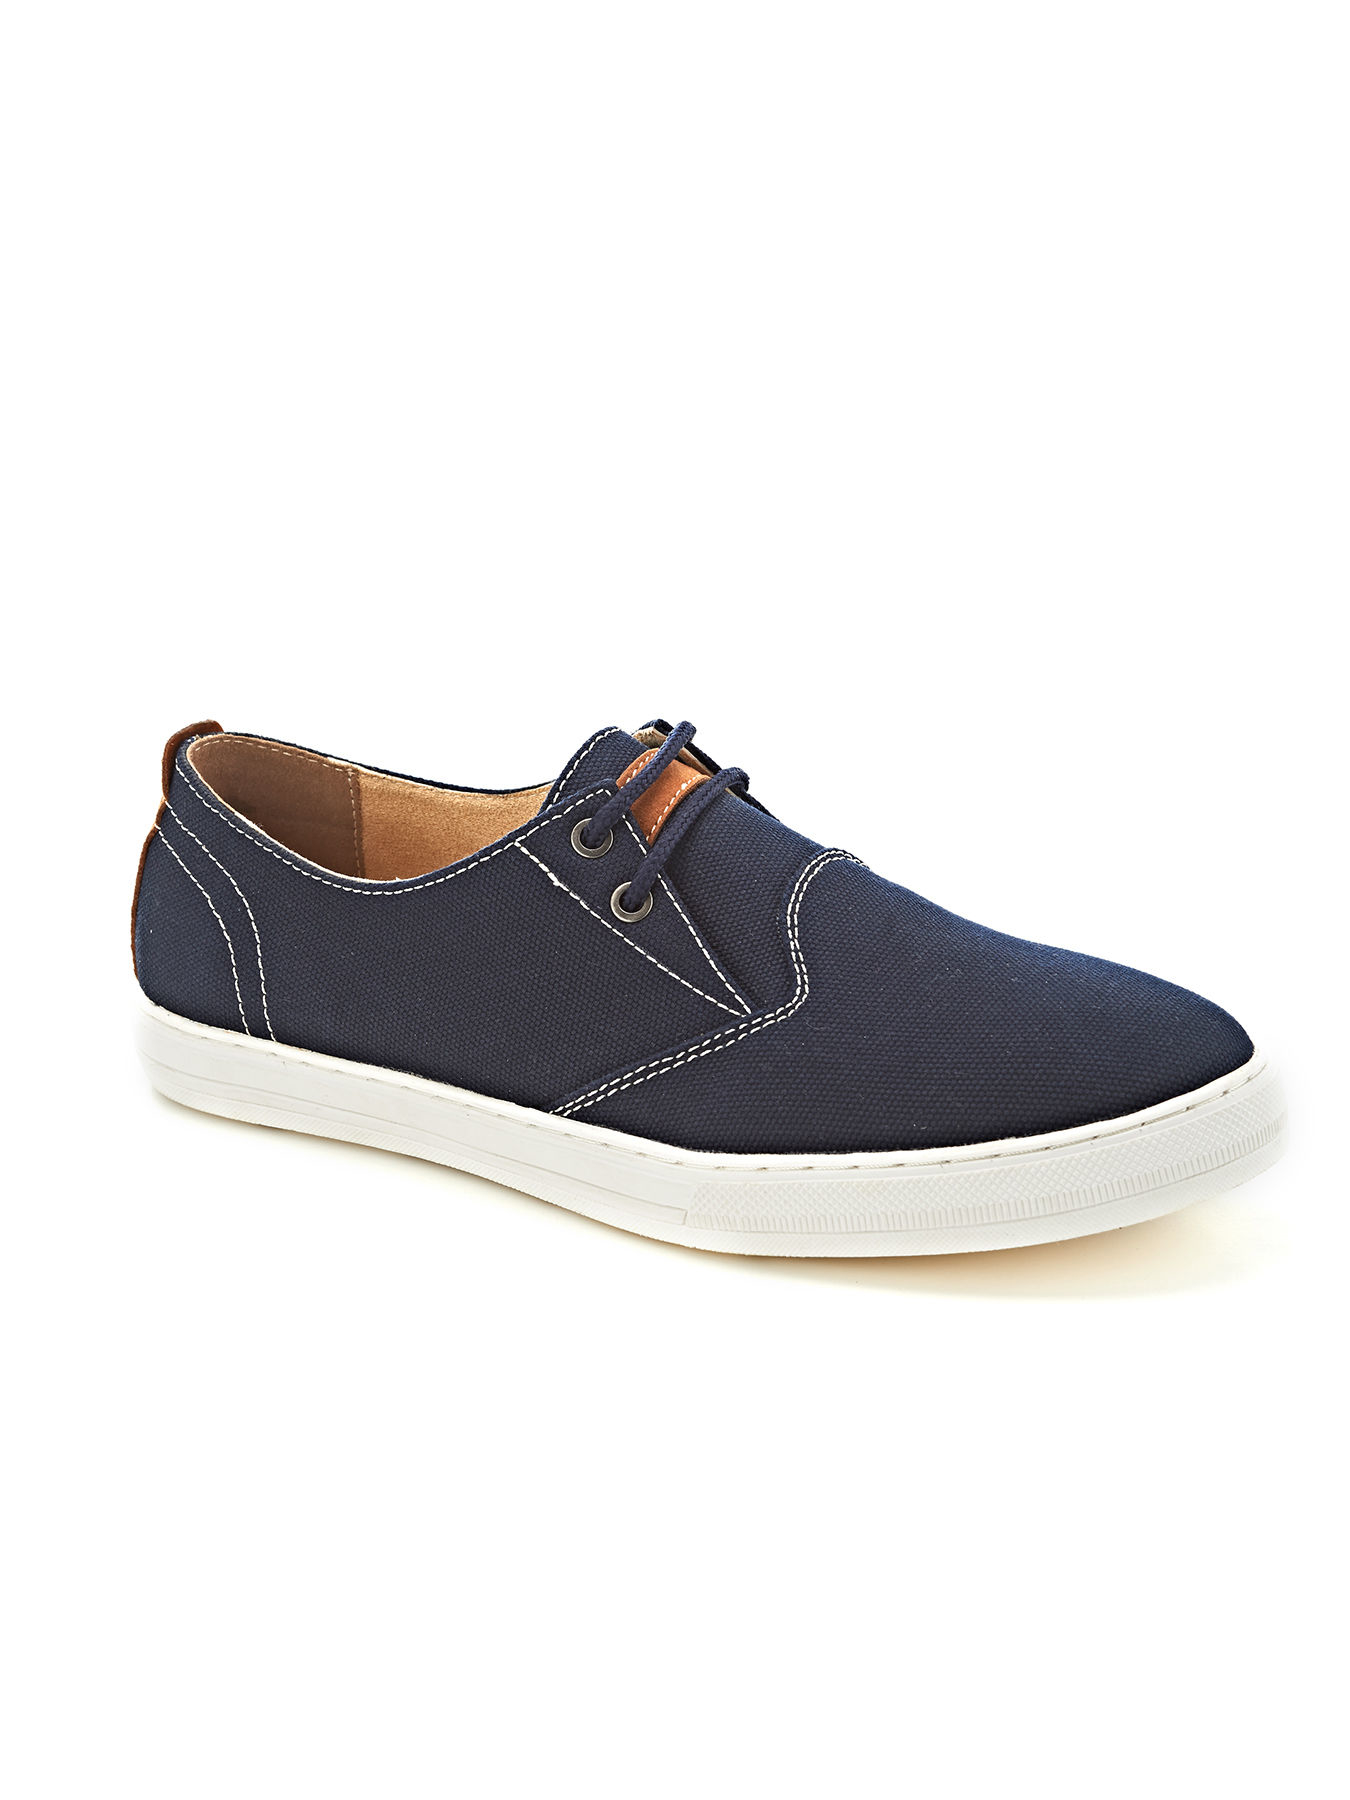 perry ellis tubbs canvas sneaker in blue for navy lyst